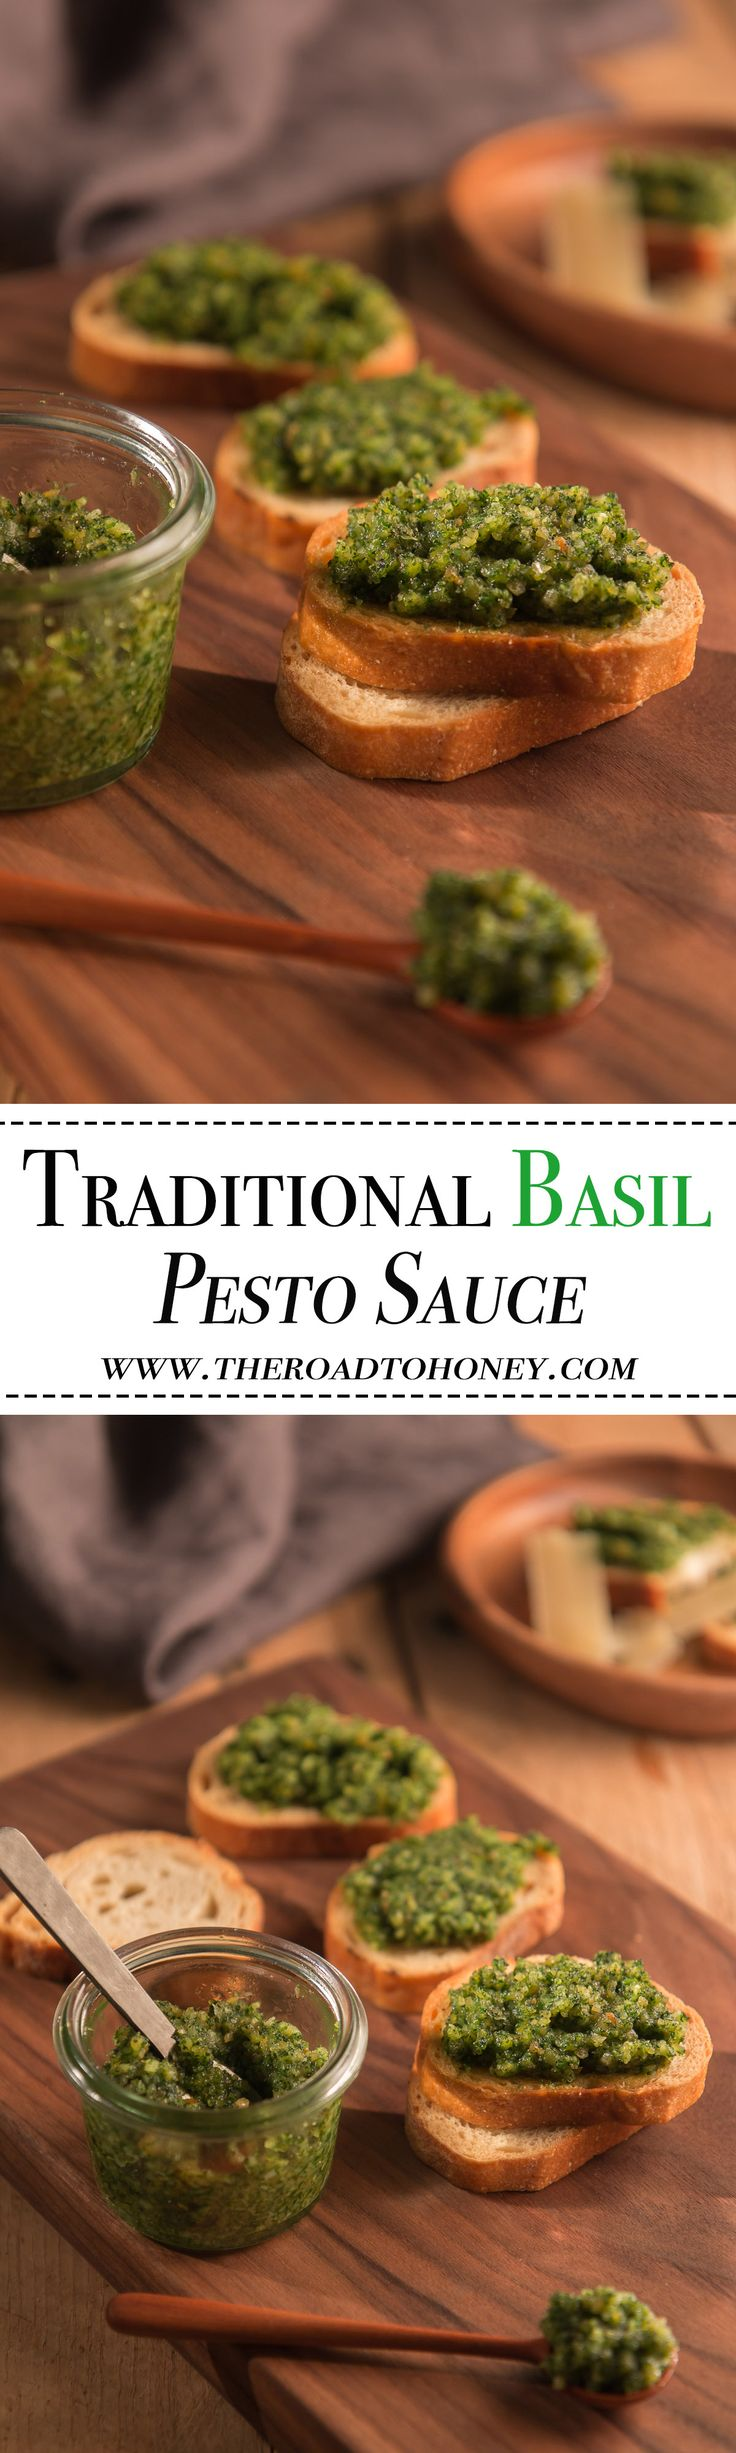 This fresh & vibrant basil pesto sauce is made from basil, garlic, pine nuts & parmesan. It's great on it's own or on top of pasta, pizza, chicken or fish.